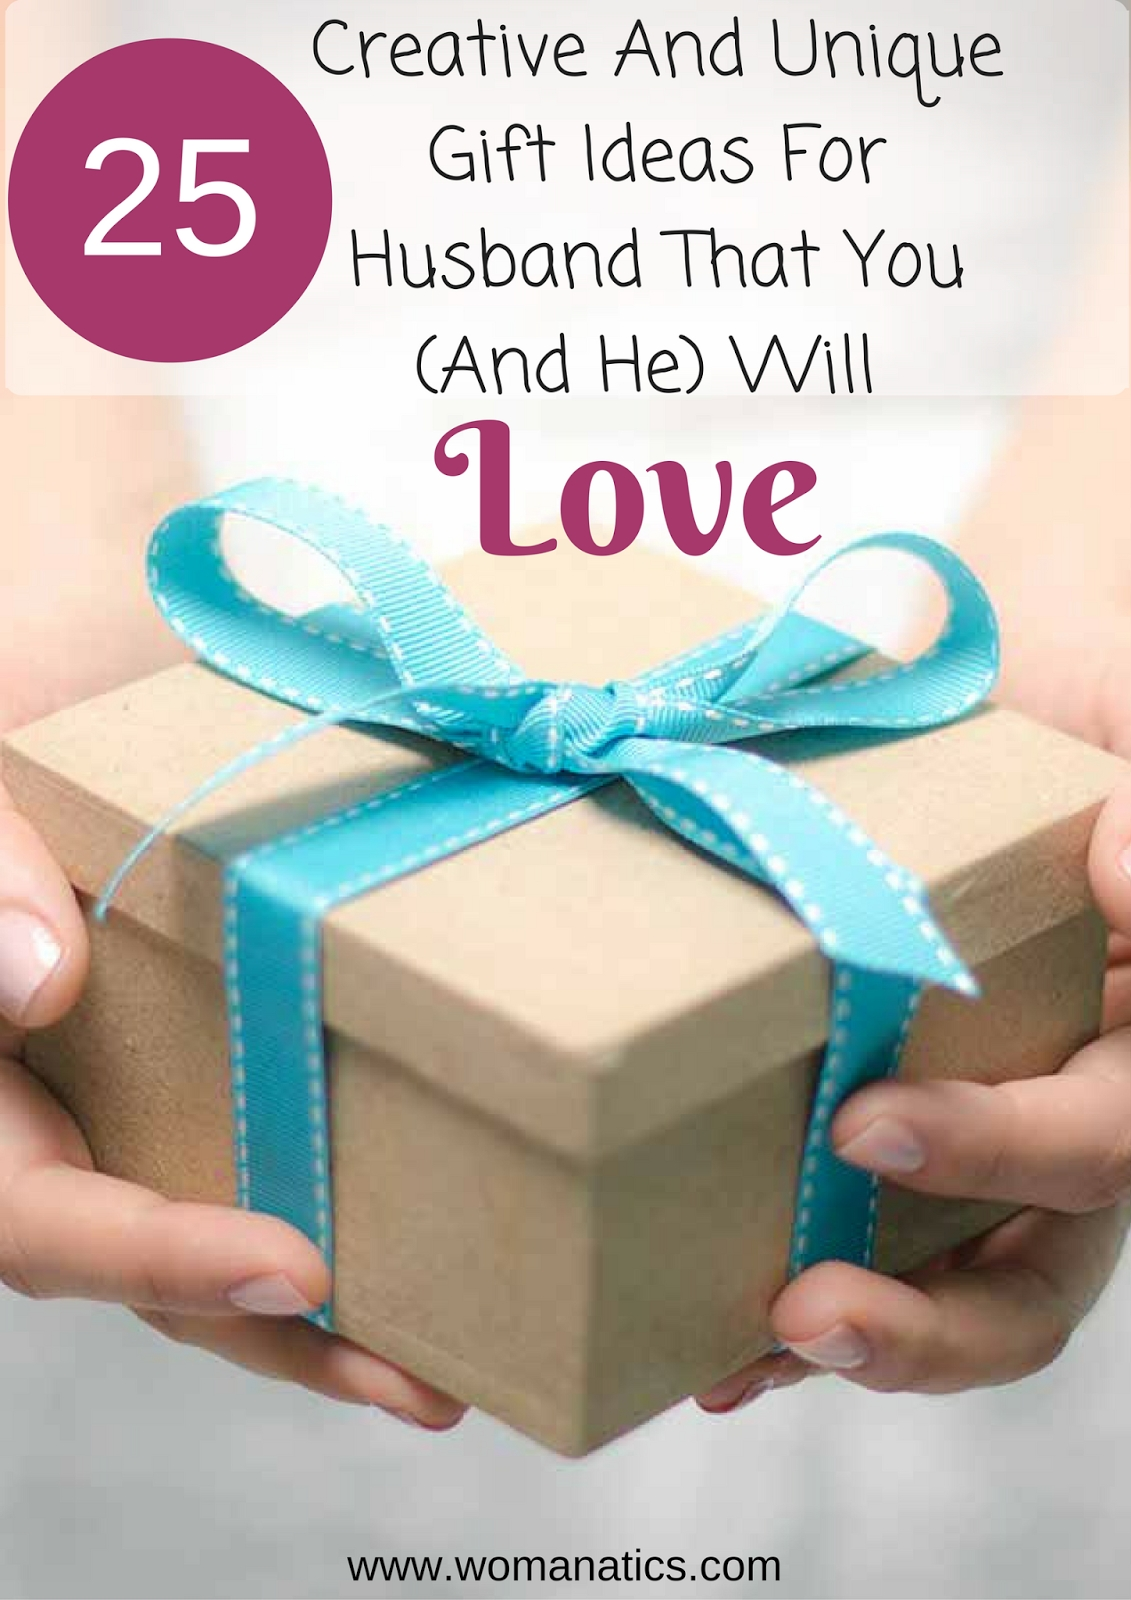 10 Attractive Bday Gift Ideas For Him 25 creative and unique gift ideas for husbands birthday that you 8 2020